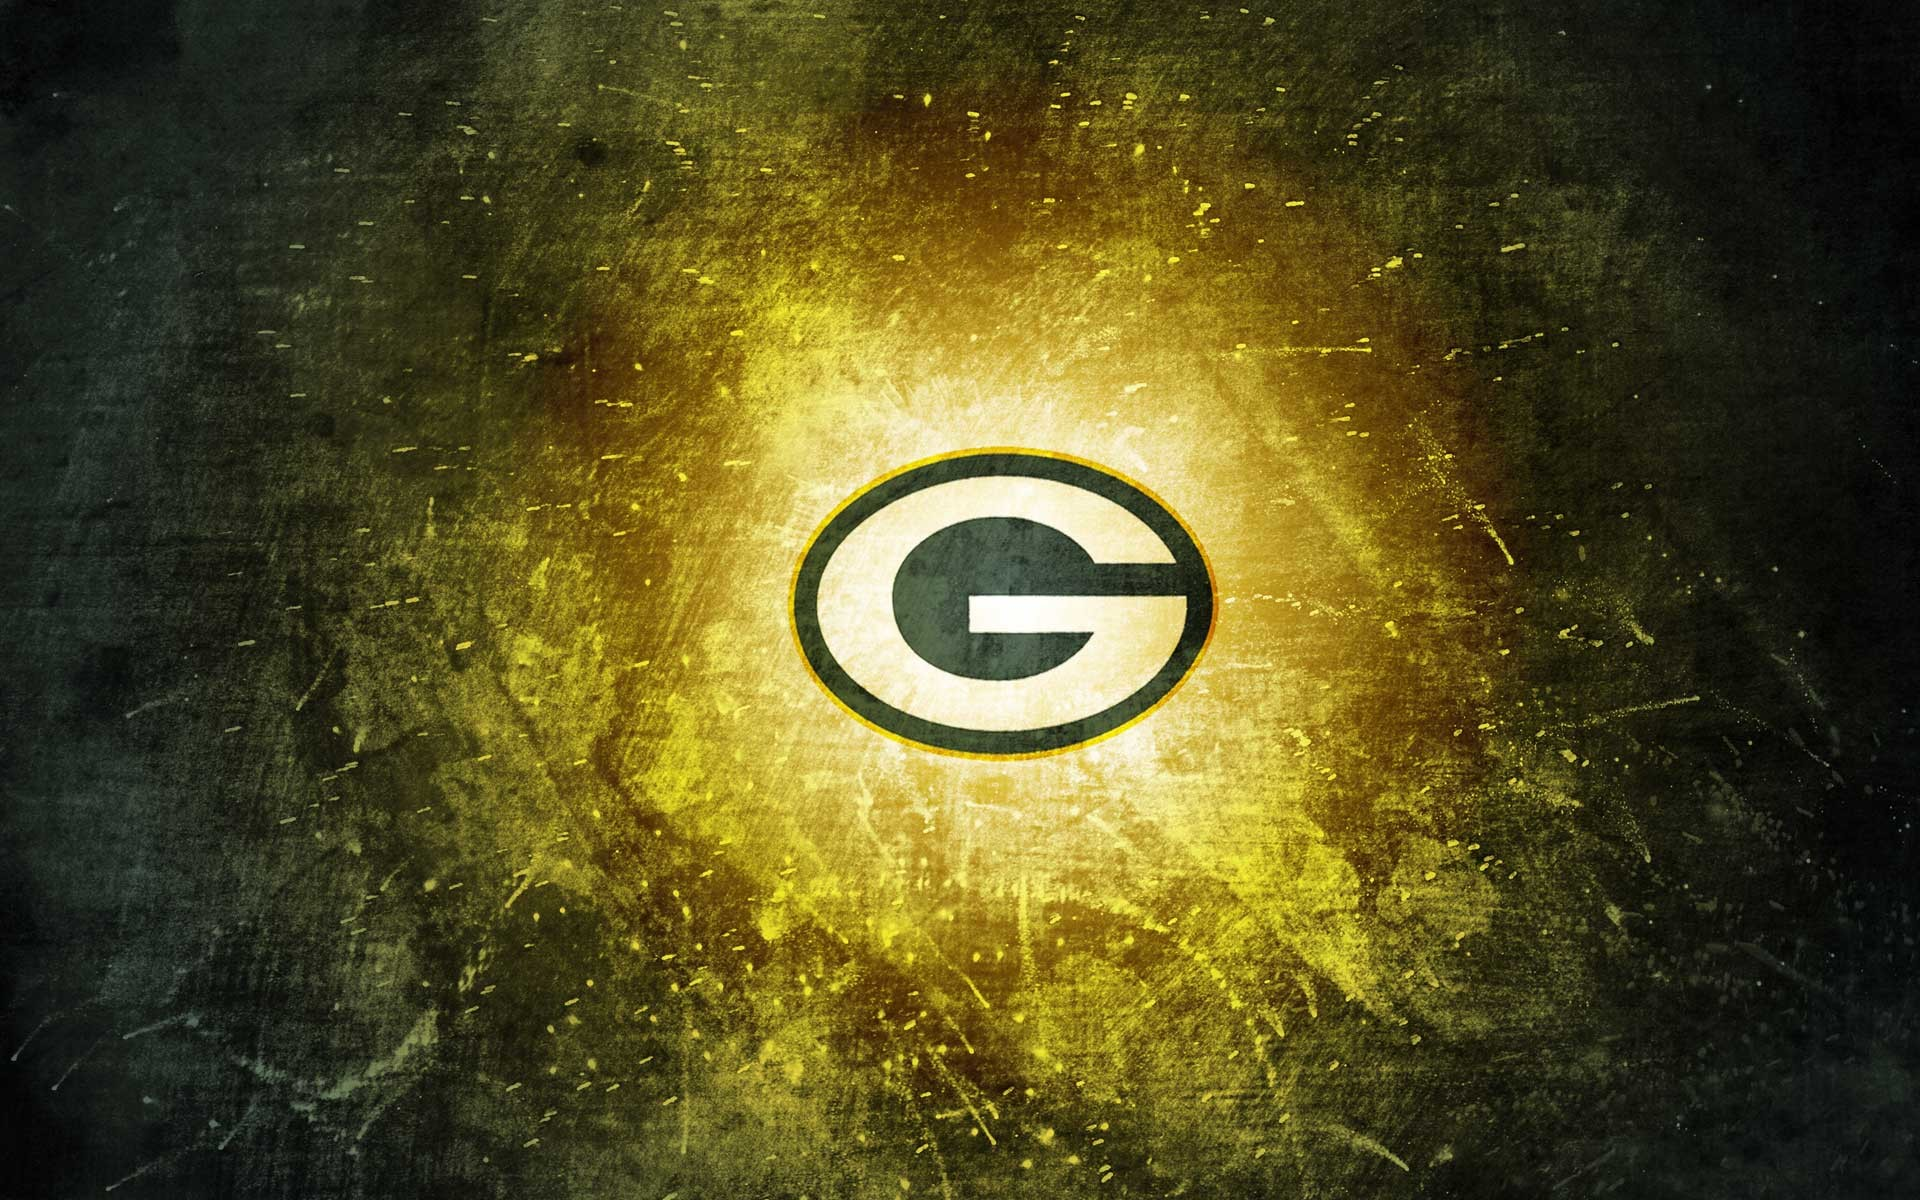 1920x1200 Green Bay Packers Wallpaper - Dr. Odd